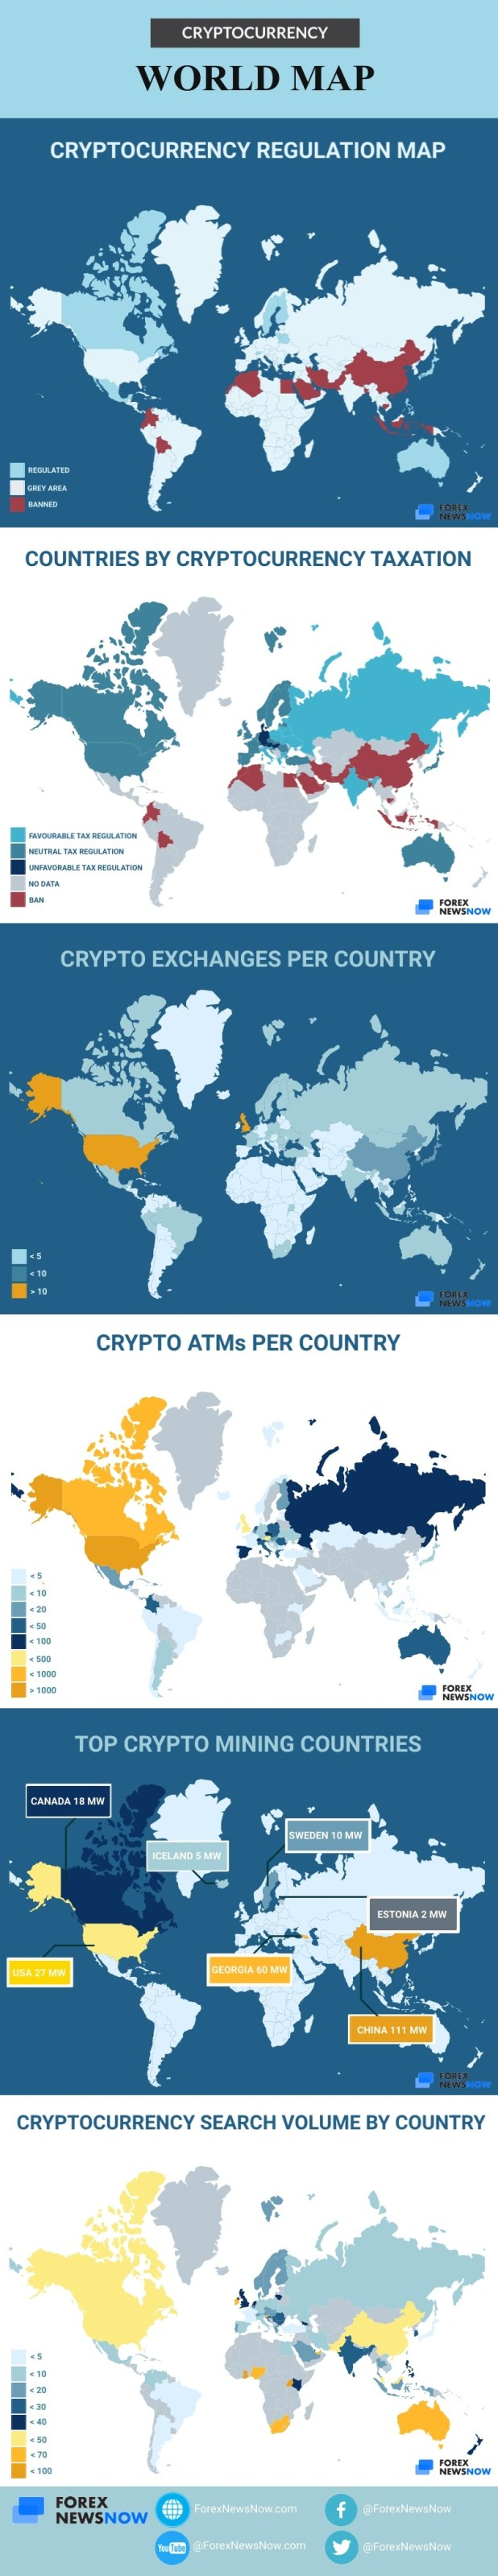 Cryptocurrency World Map